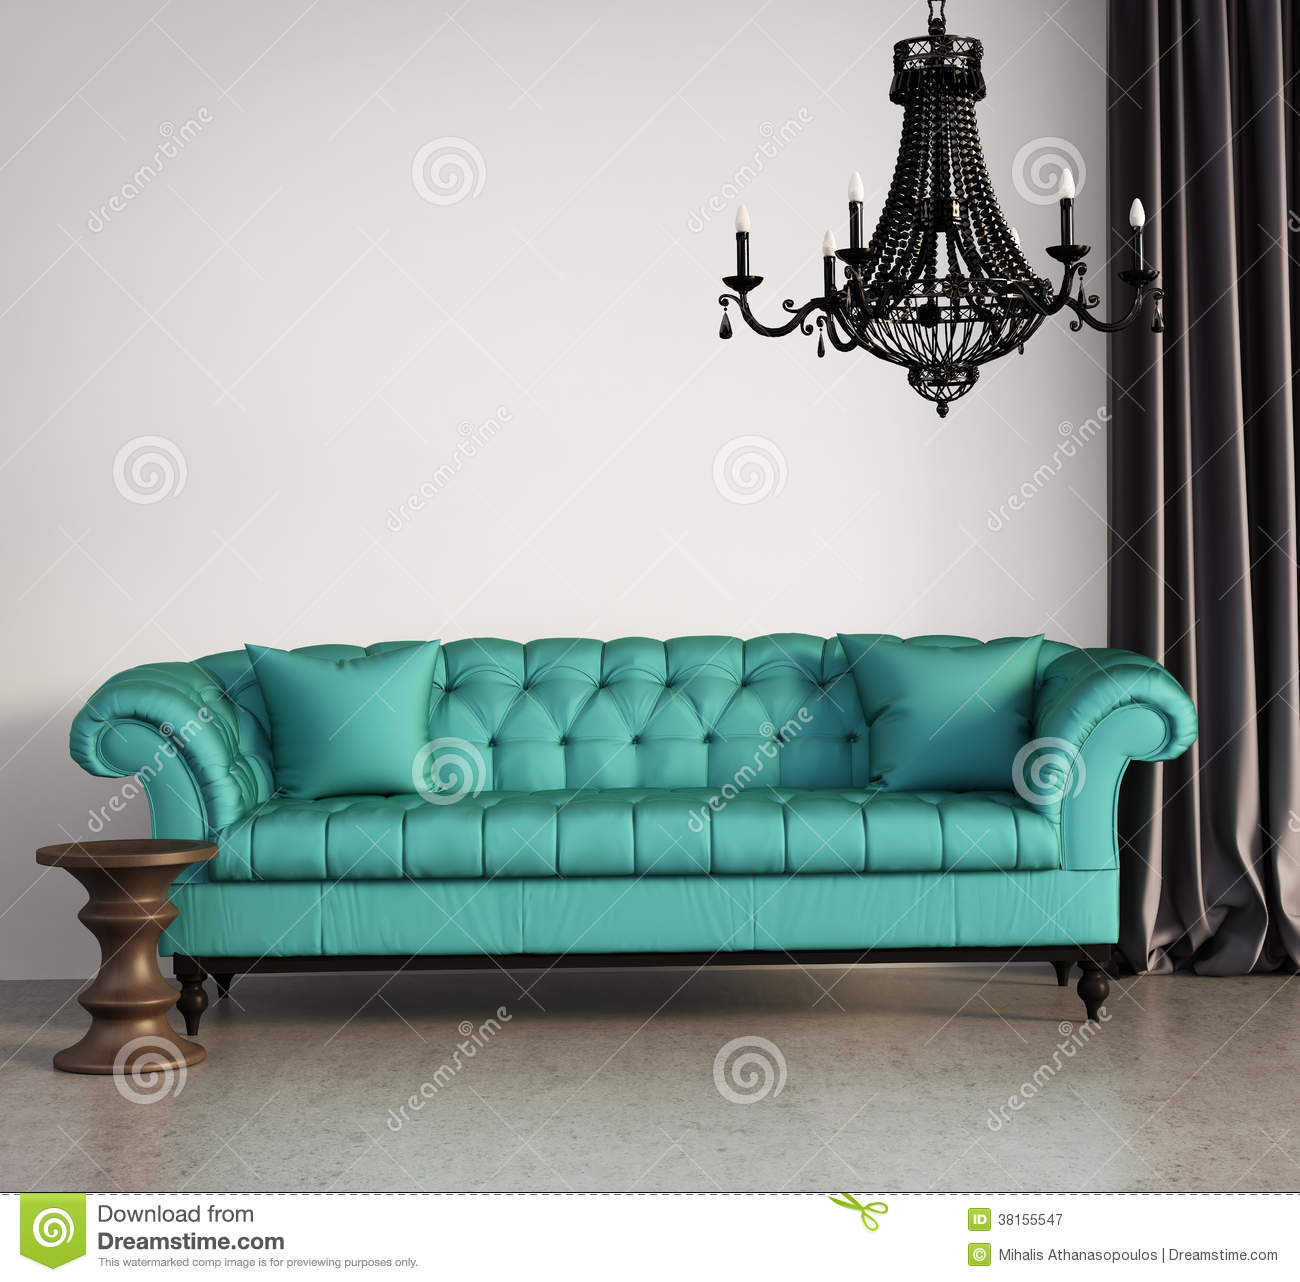 Vintage classic elegant living room royalty free stock - Decoracion vintage de interiores ...